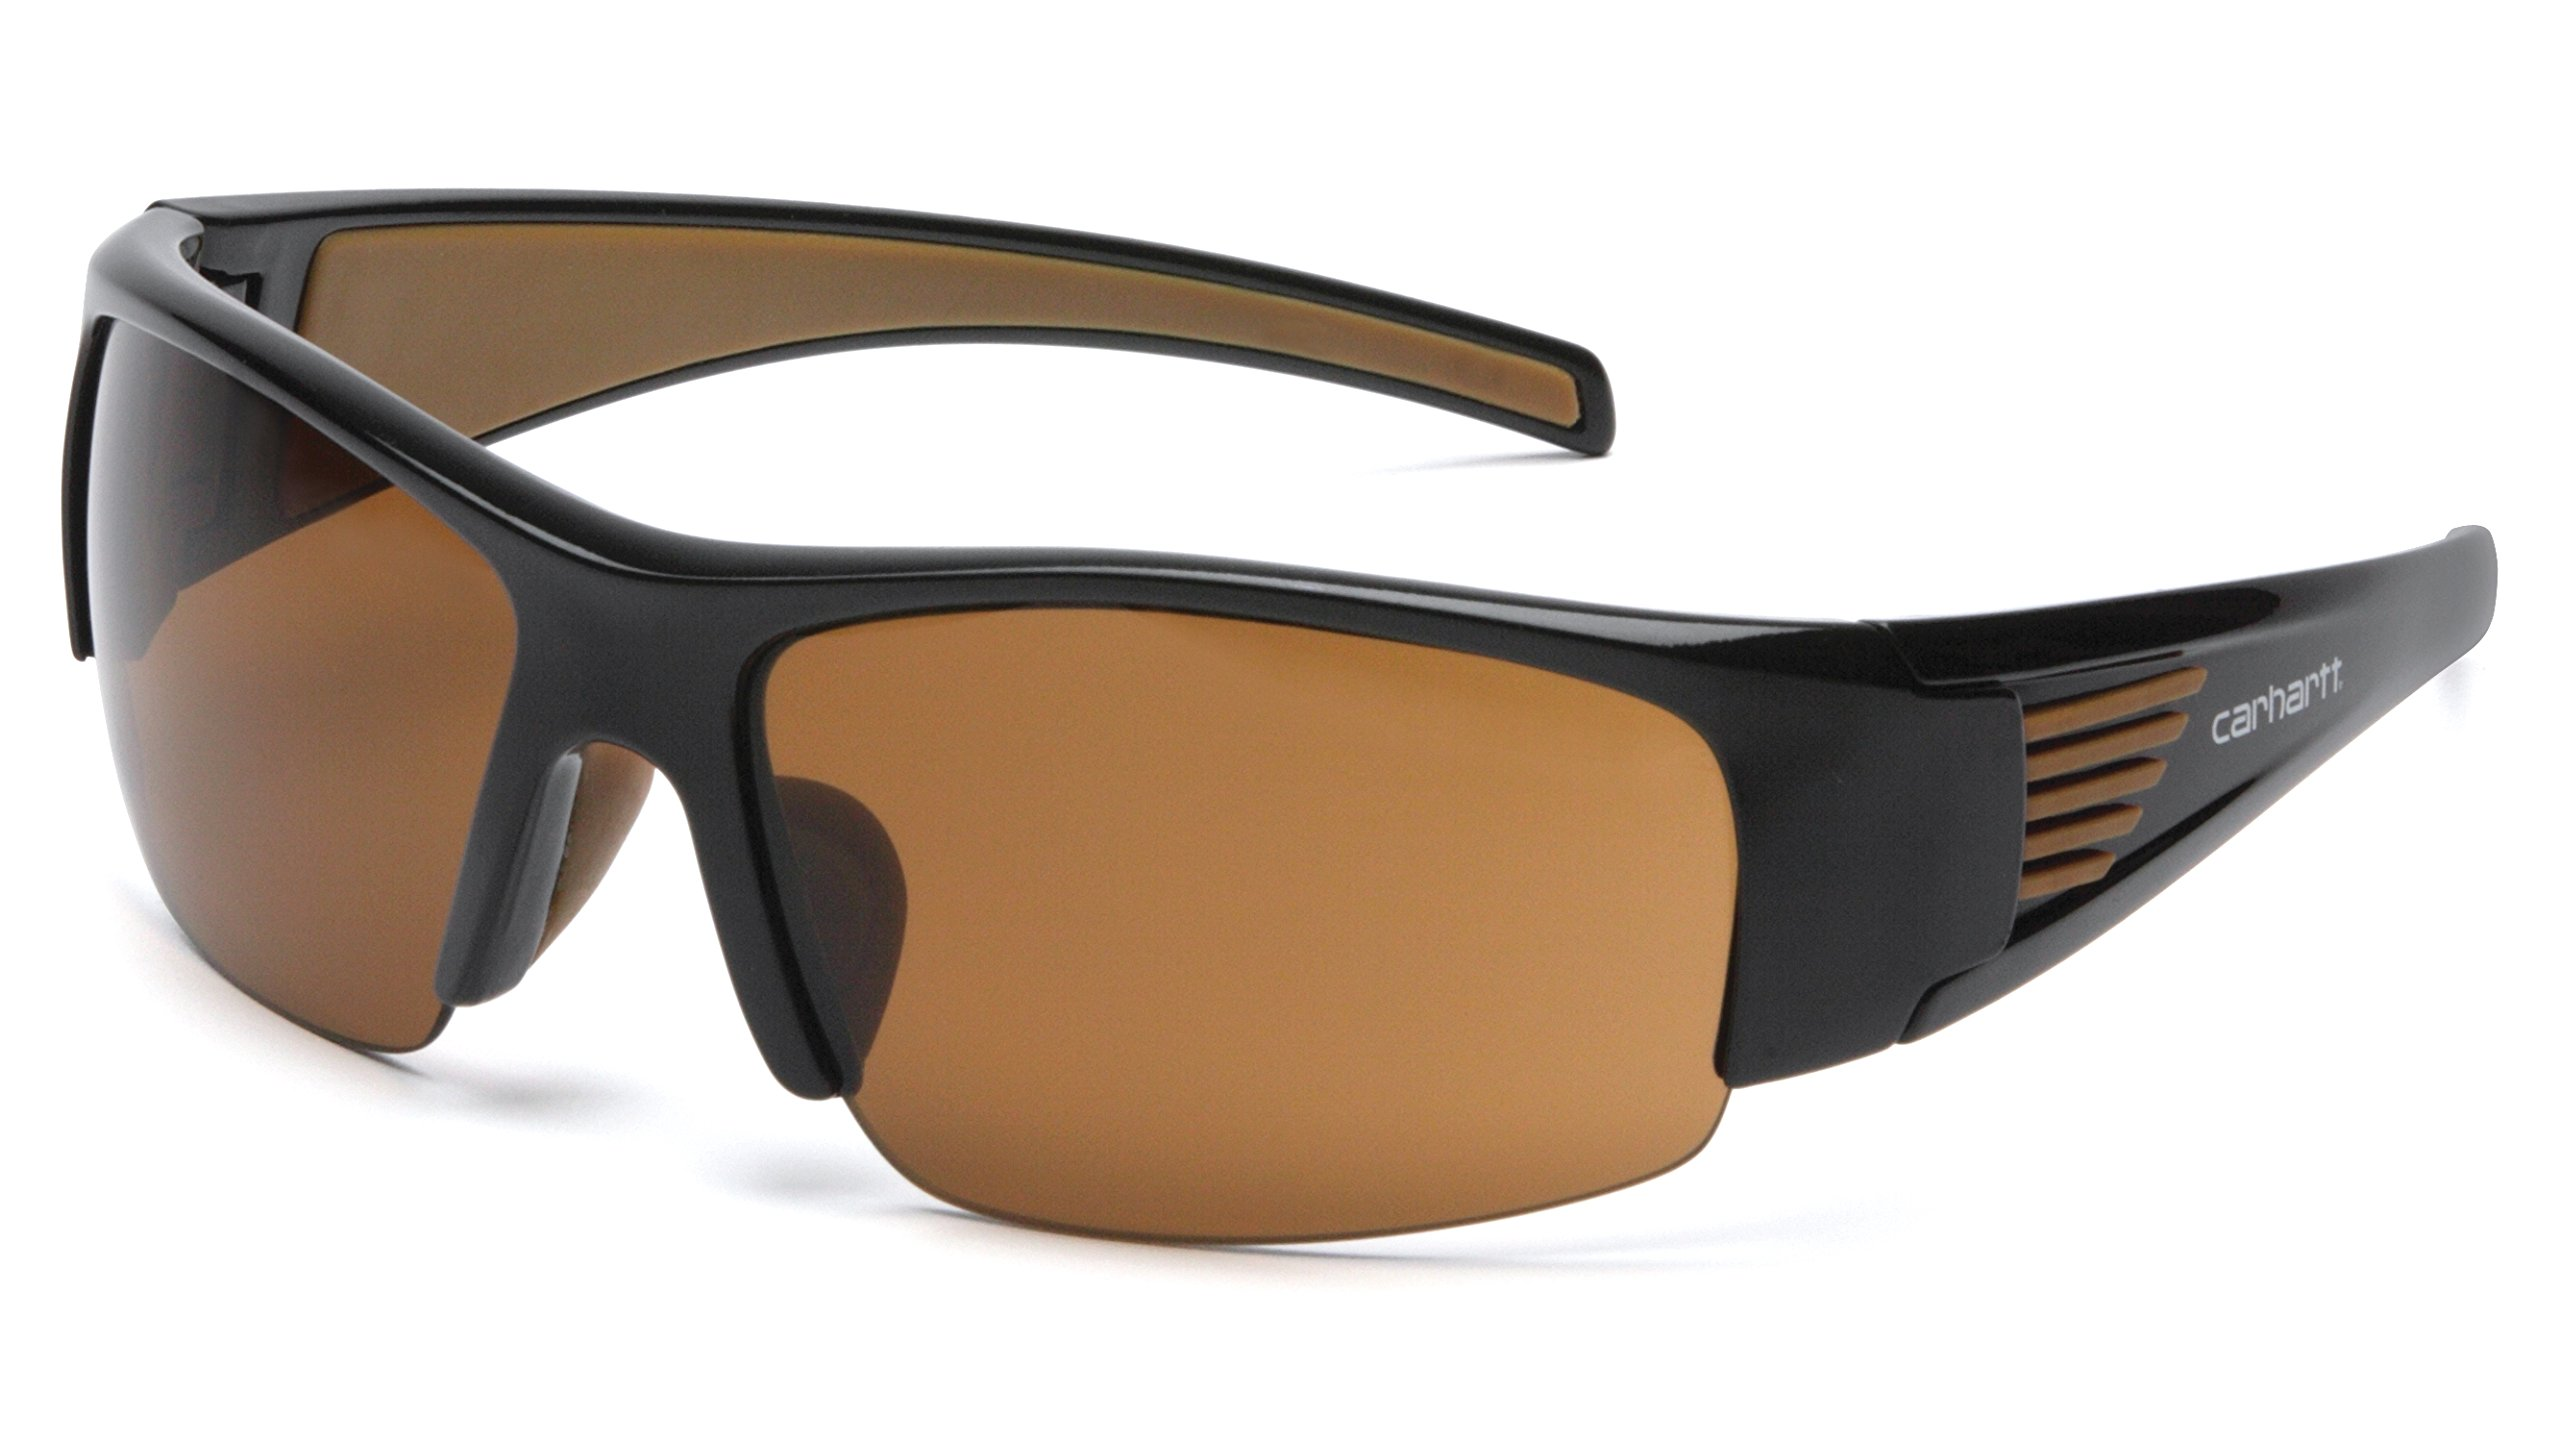 Carhartt Thunder Bay Safety Eyewear with Sandstone Bronze Anti-fog Lens